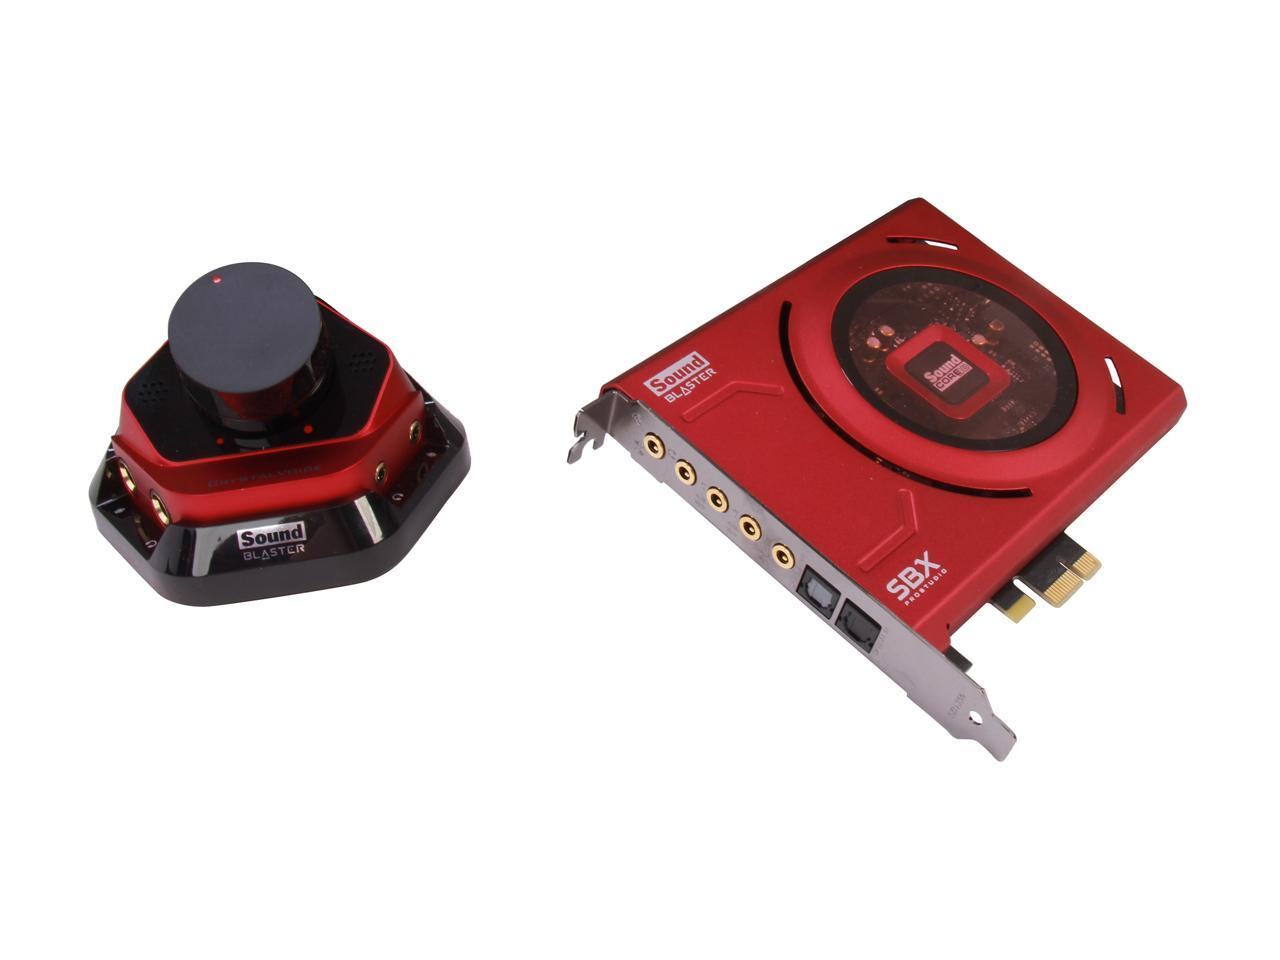 Creative Sound Blaster Zx 116dB PCIe Gaming Sound Card with 600 ohm Headphone Amp and Desktop Audio Control Module